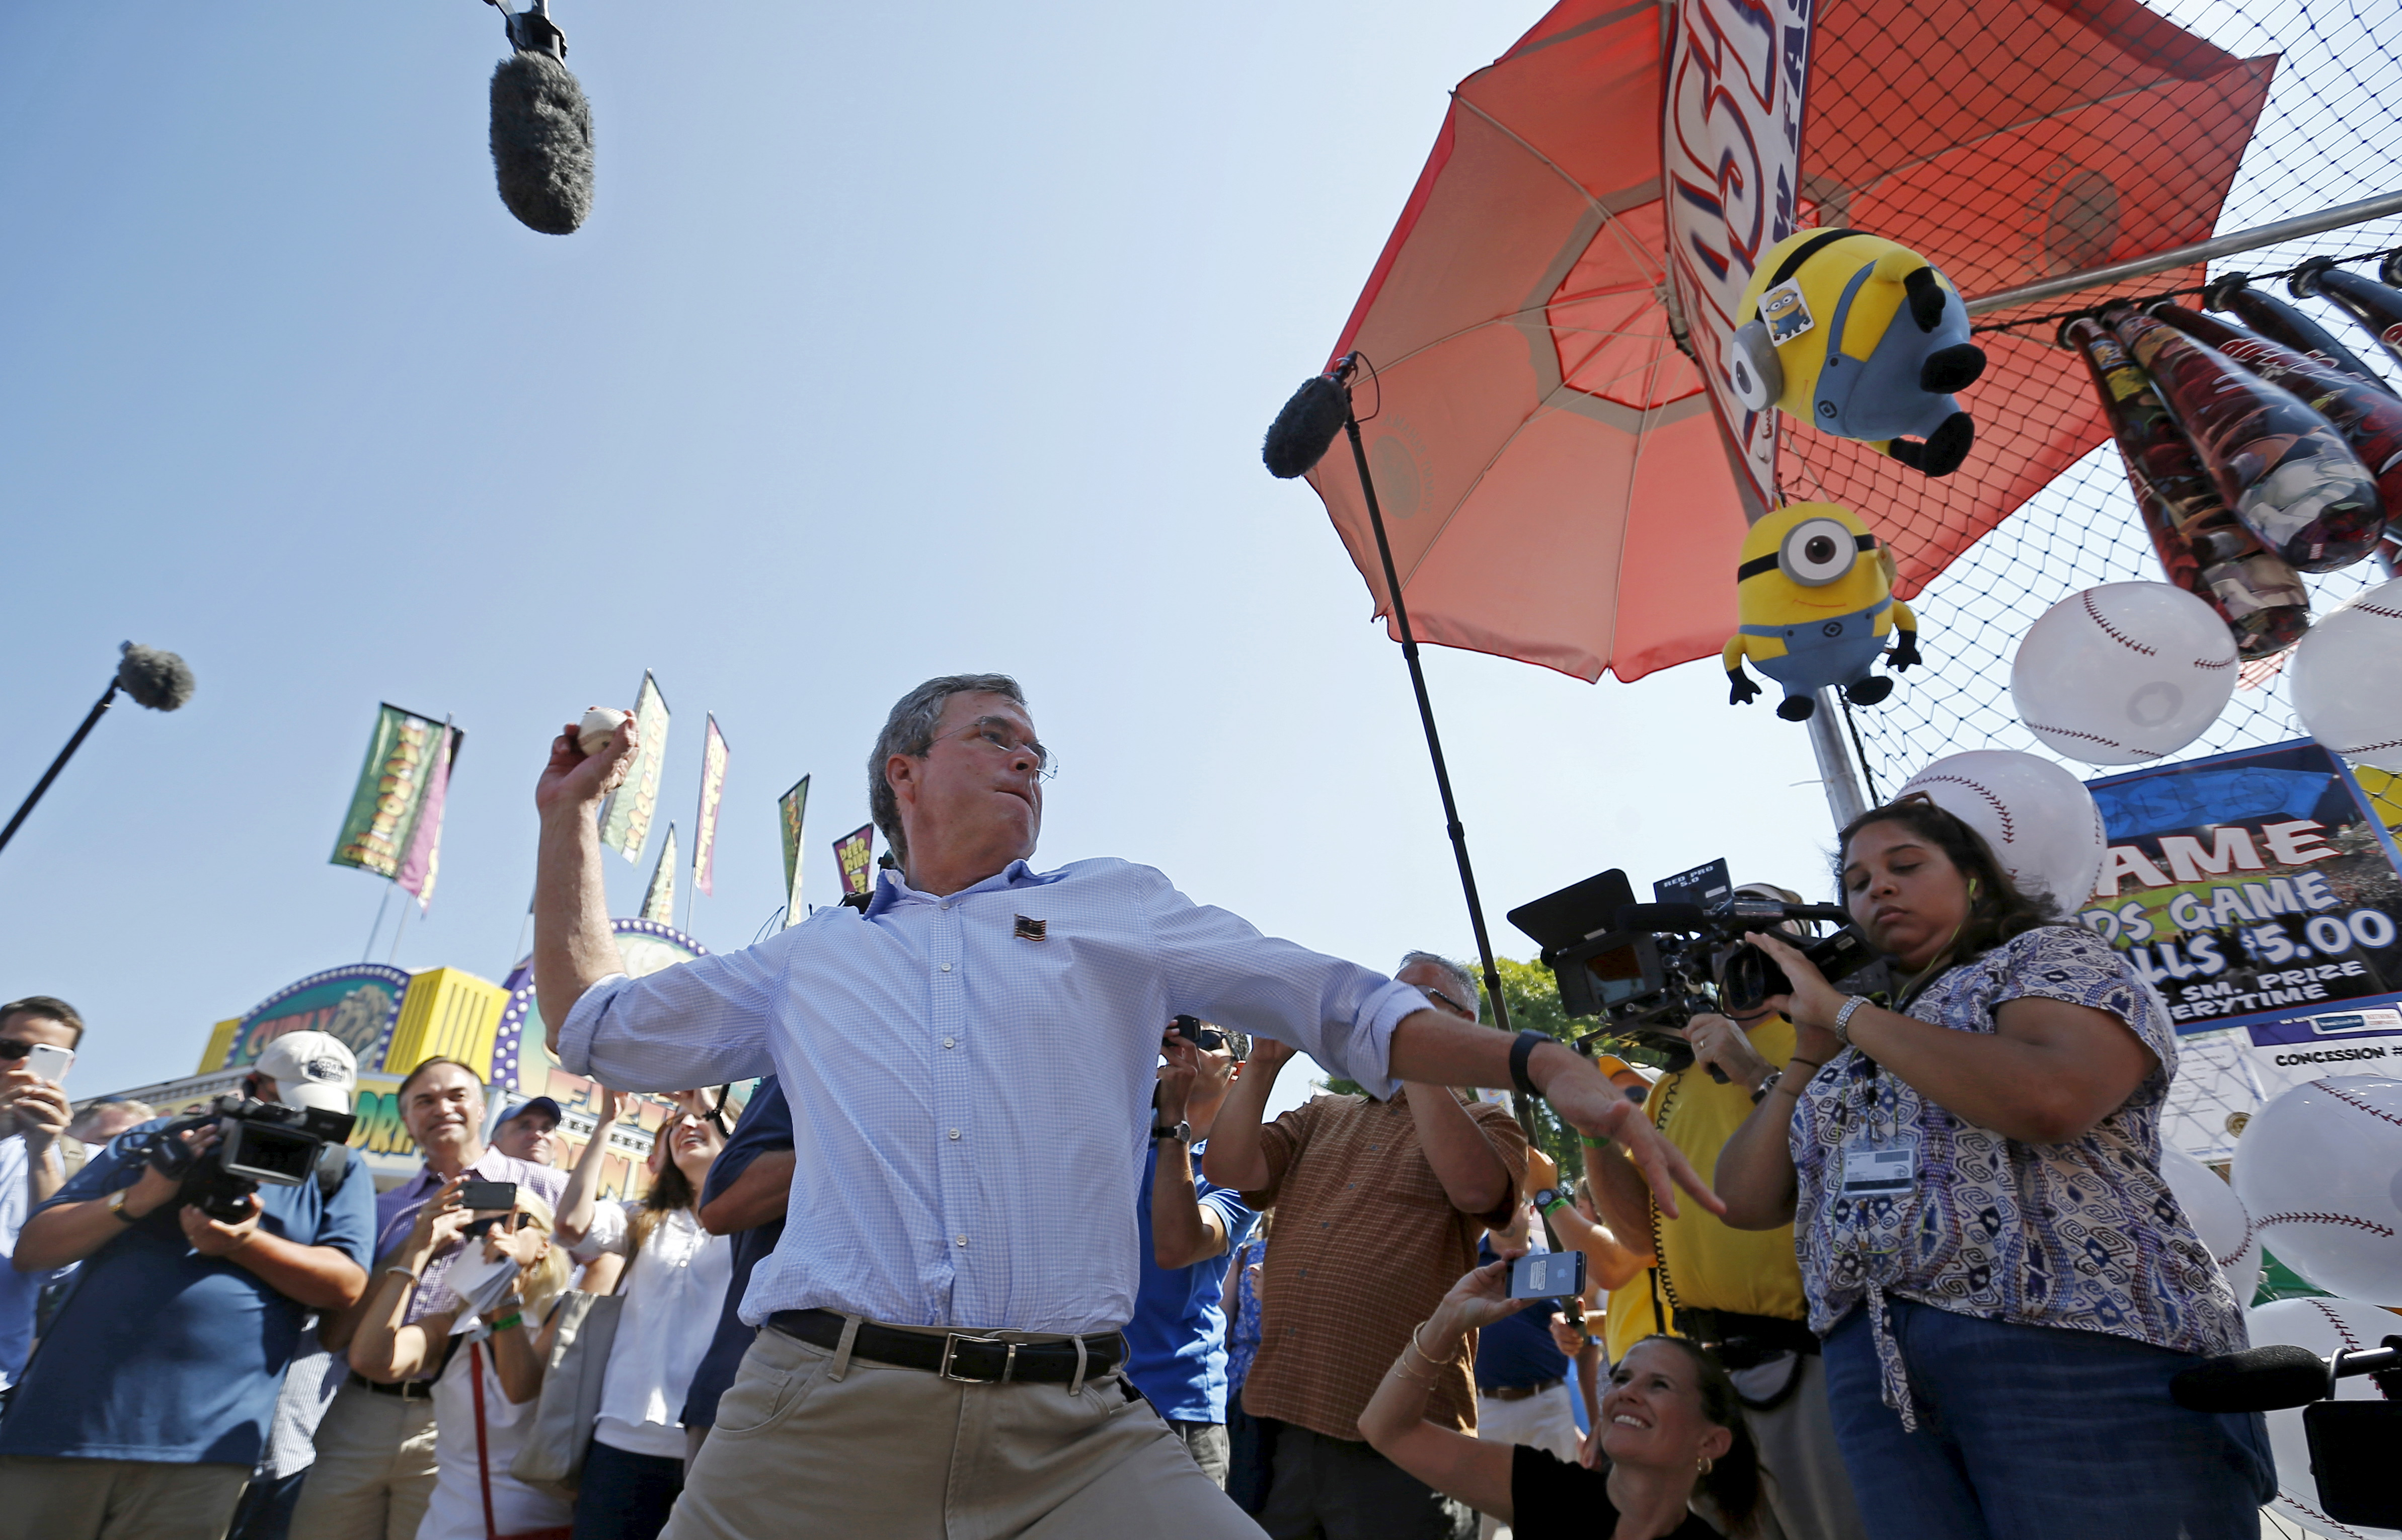 U.S. Republican presidential candidate Jeb Bush throws a baseball as he campaigns at the Iowa State Fair in Des Moines, Iowa, United States, August 14, 2015. REUTERS/Jim Young   - RTX1OBCX